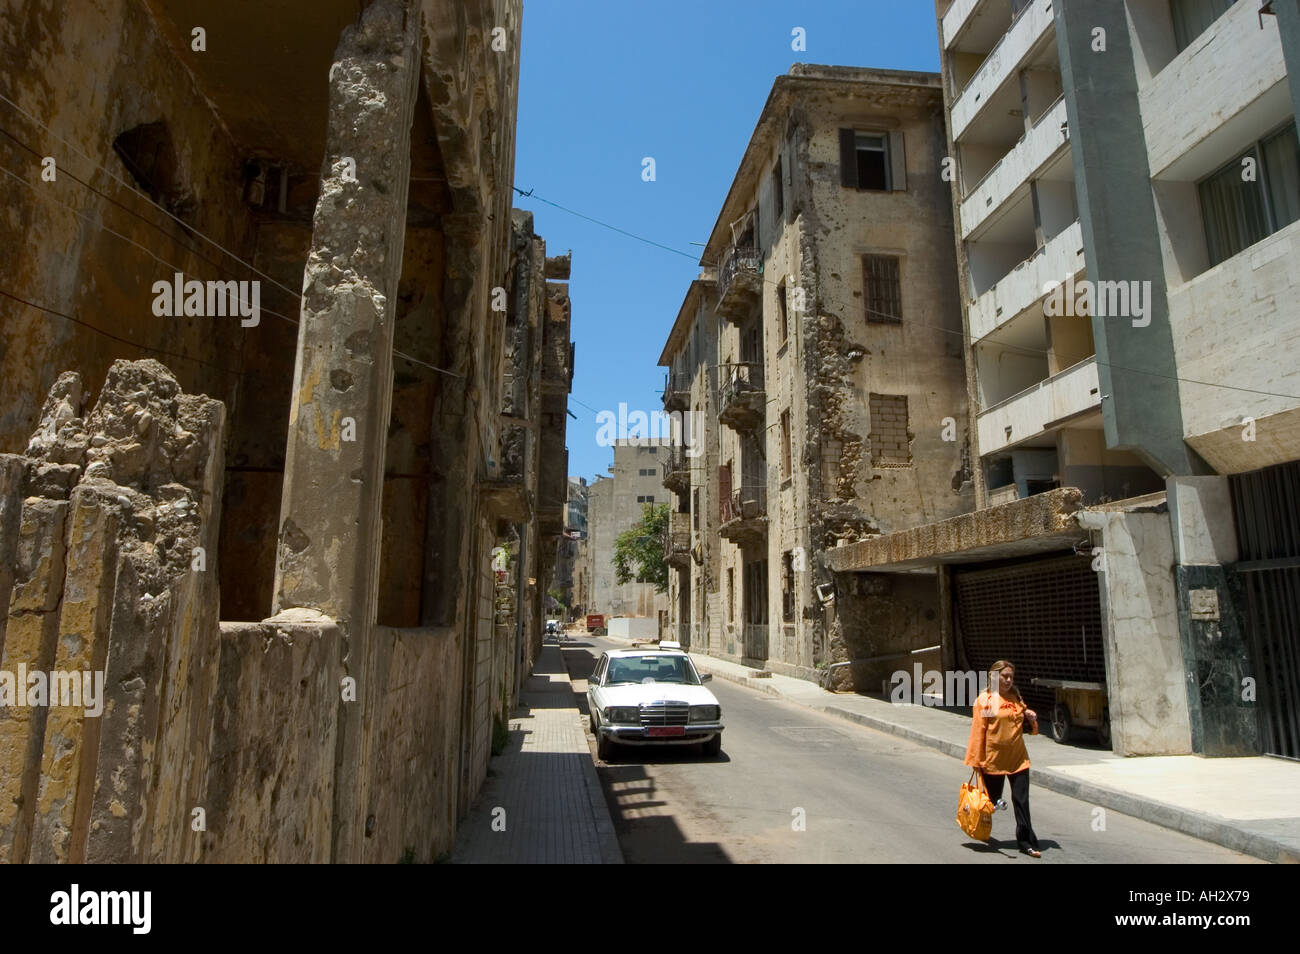 bombed out city new buildings Bierut Lebanon Middle East ...